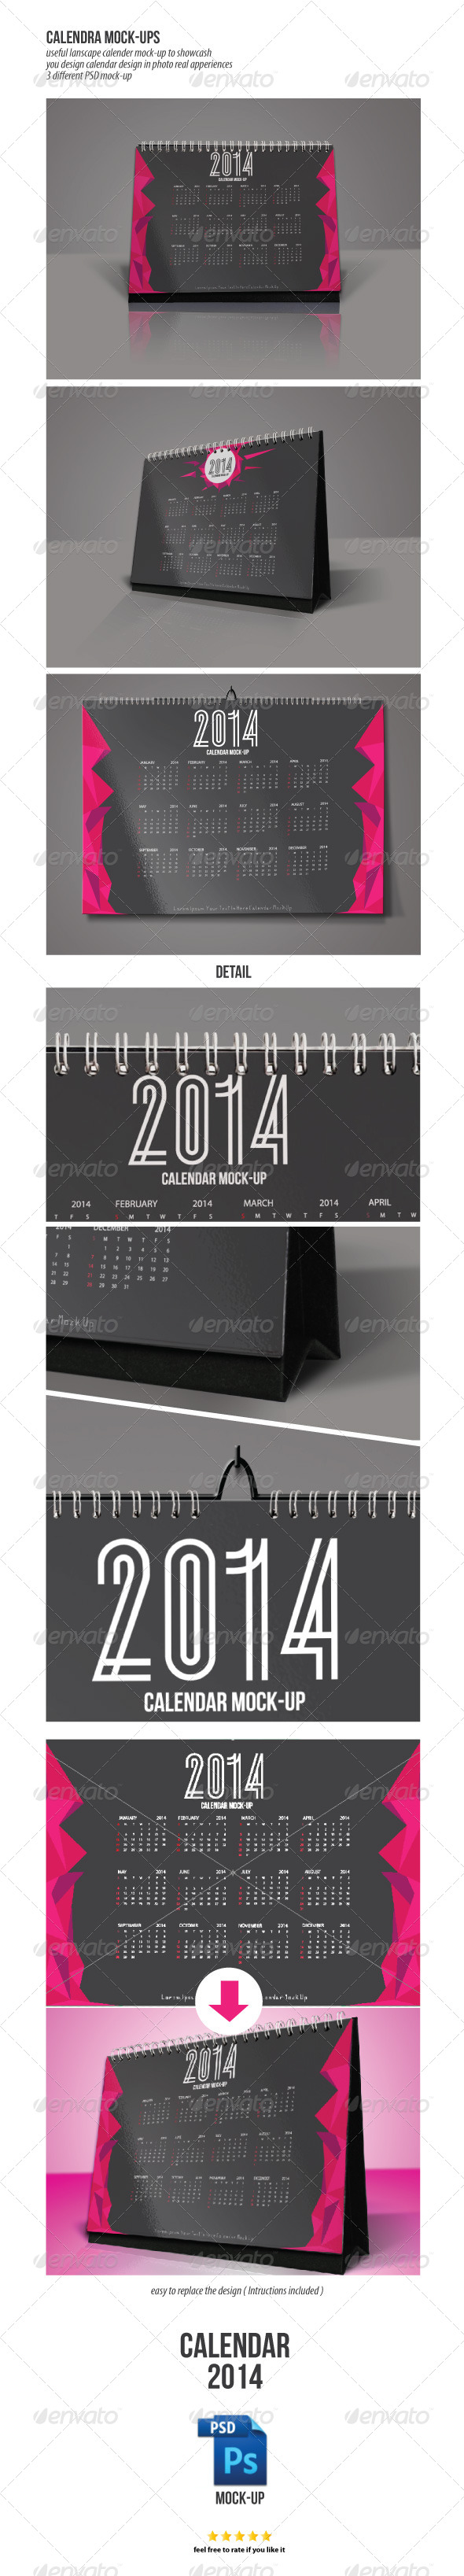 Mock-Ups Wall and Desk Calendar - Product Mock-Ups Graphics